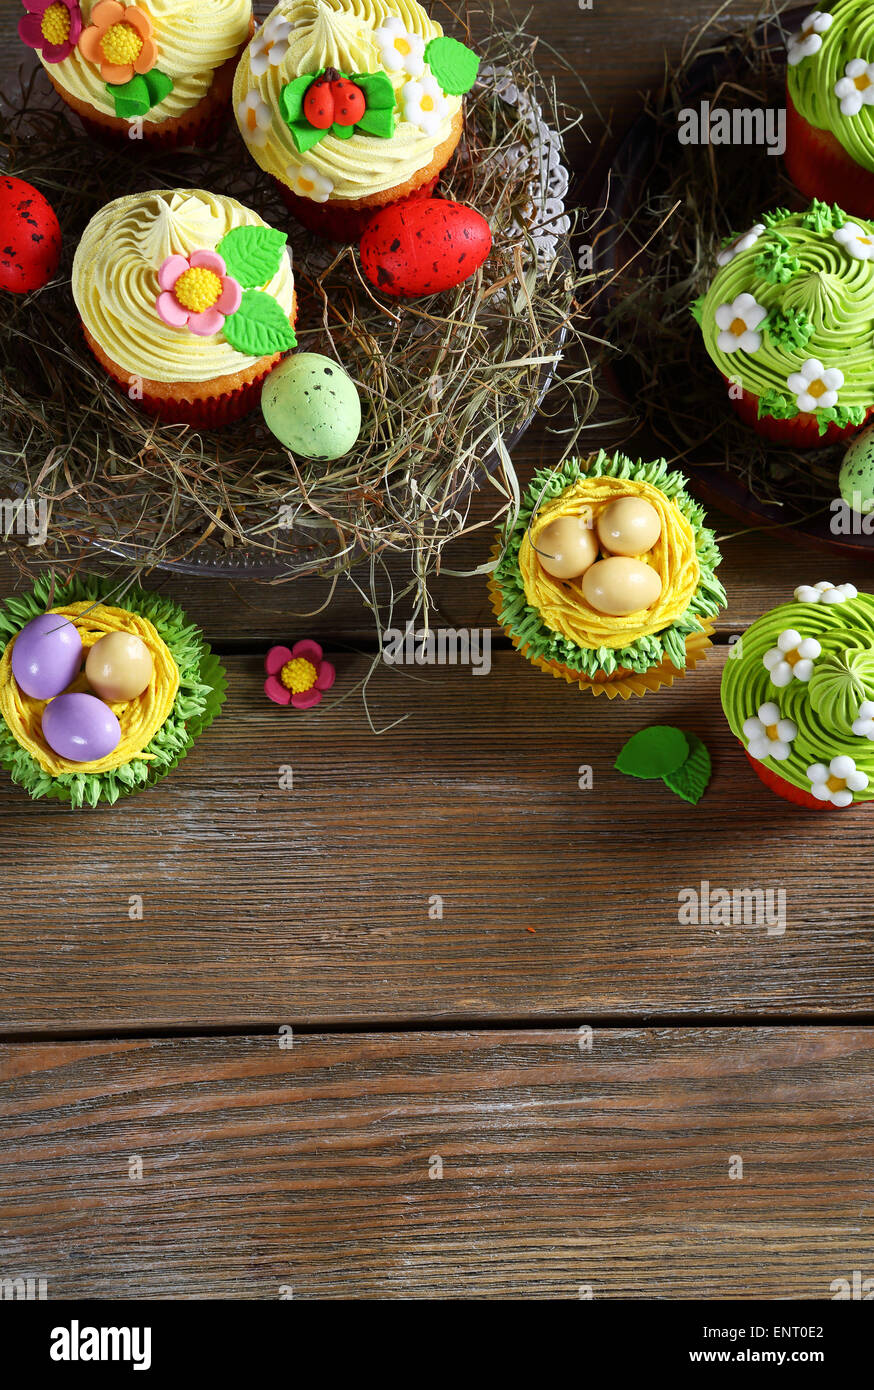 different types of Easter desserts, food closeup - Stock Image